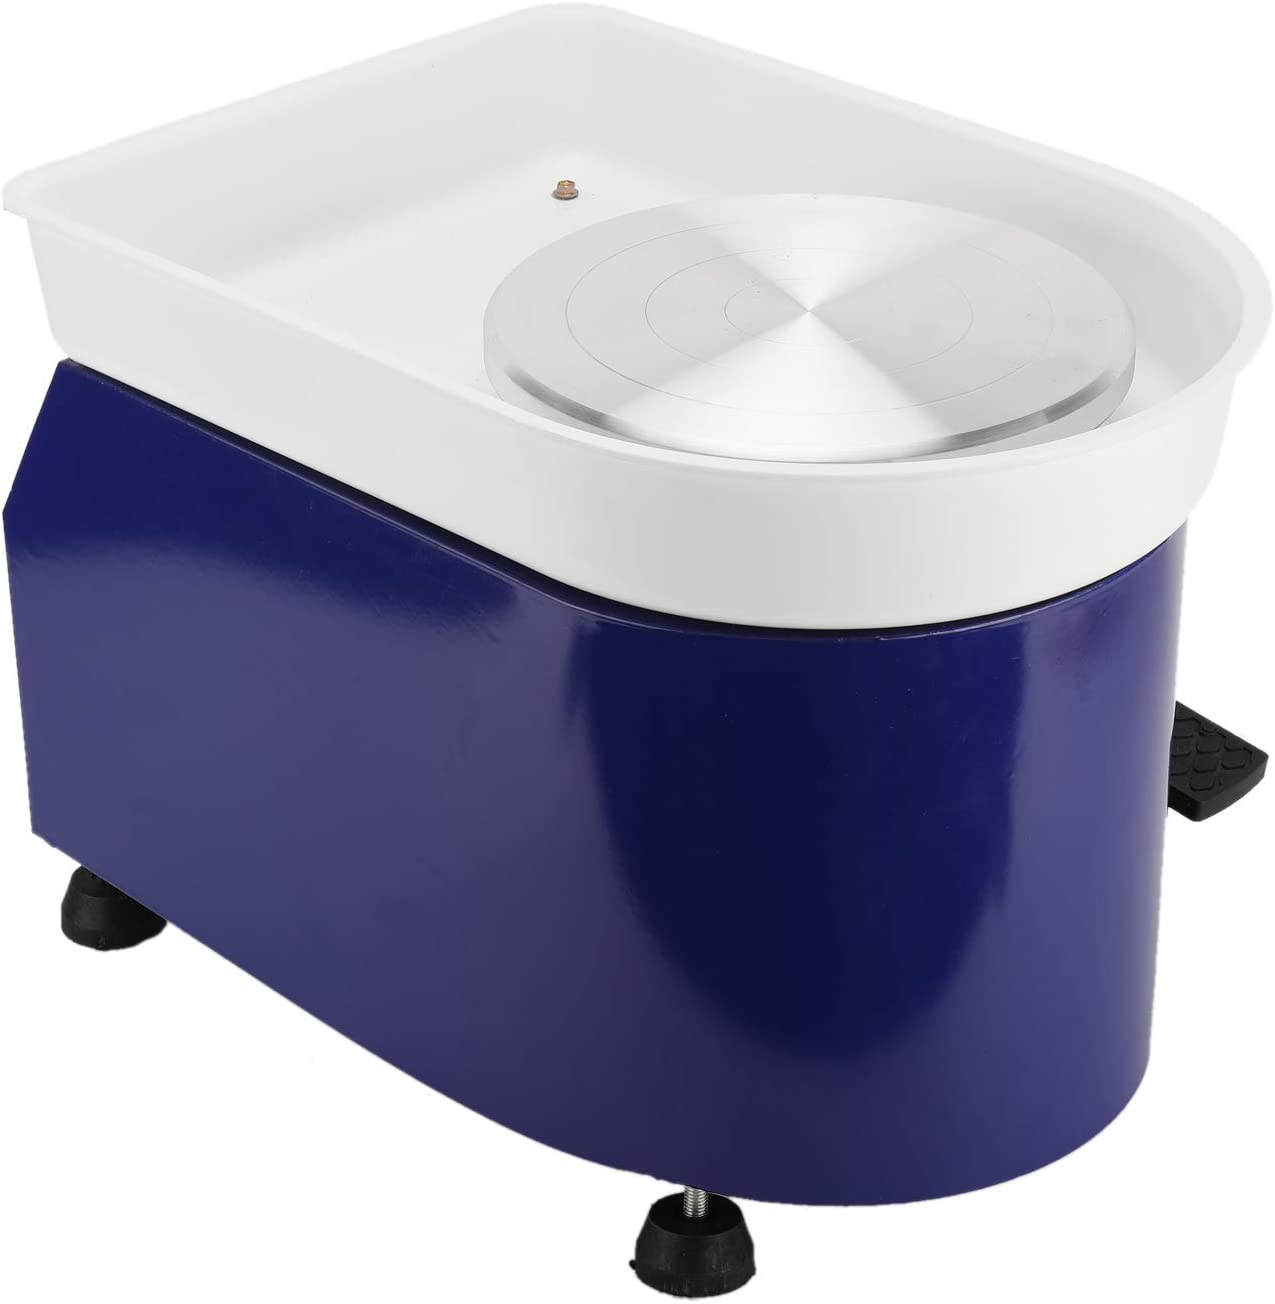 Pottery Wheel Machine 350W Ceramic Clay DIY Work Forming Machine Lever and Foot Pedal ABS Basin 25CM Blue 10